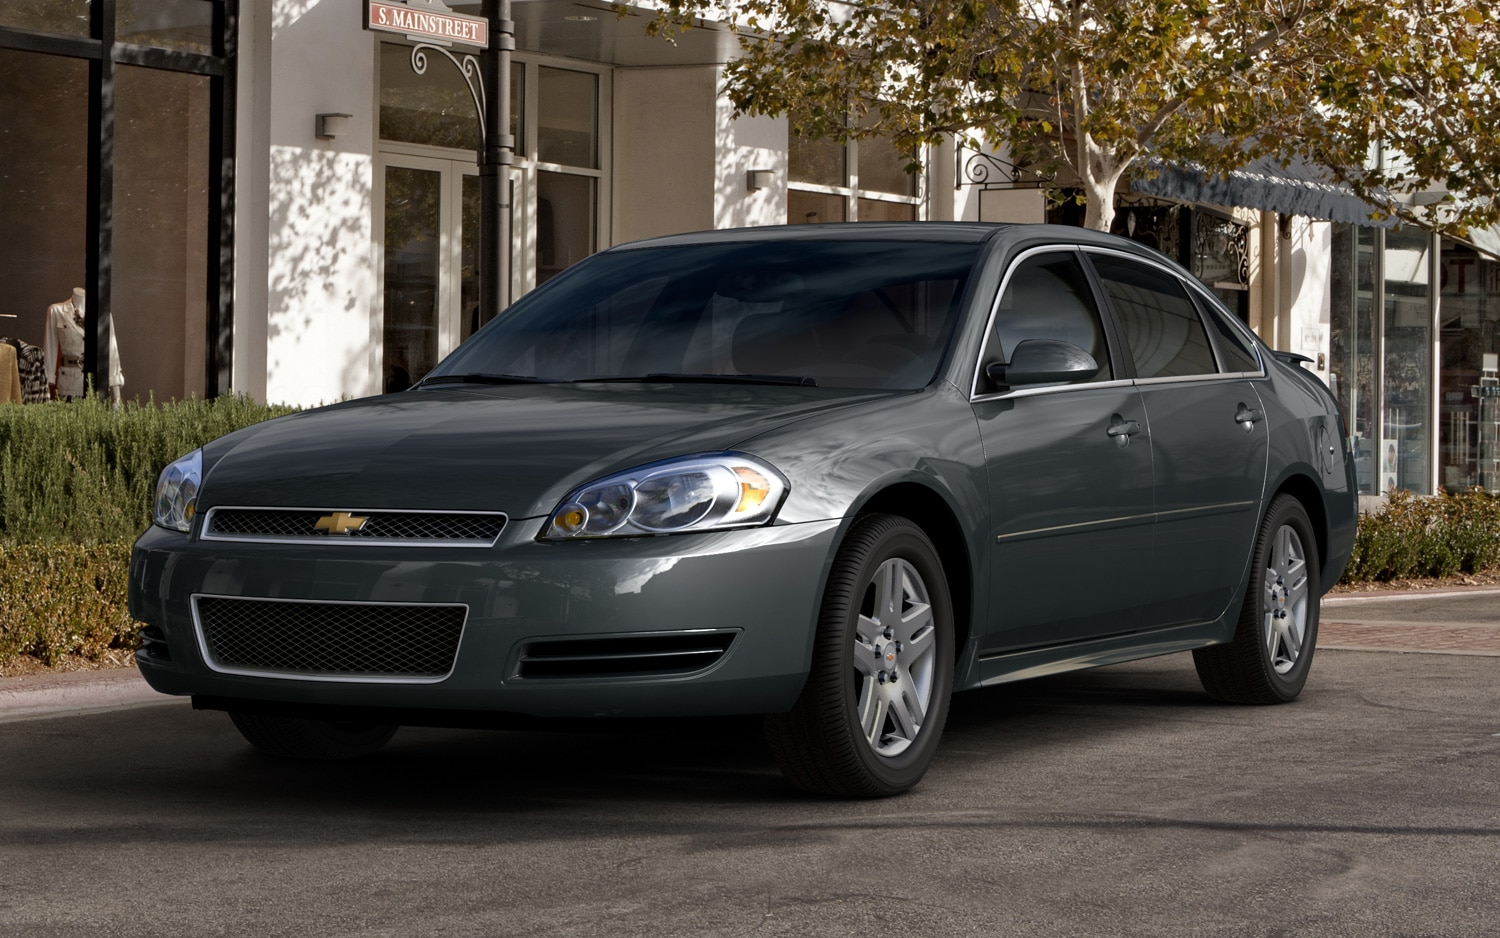 2013 Chevrolet Impala Front Three Quarter1